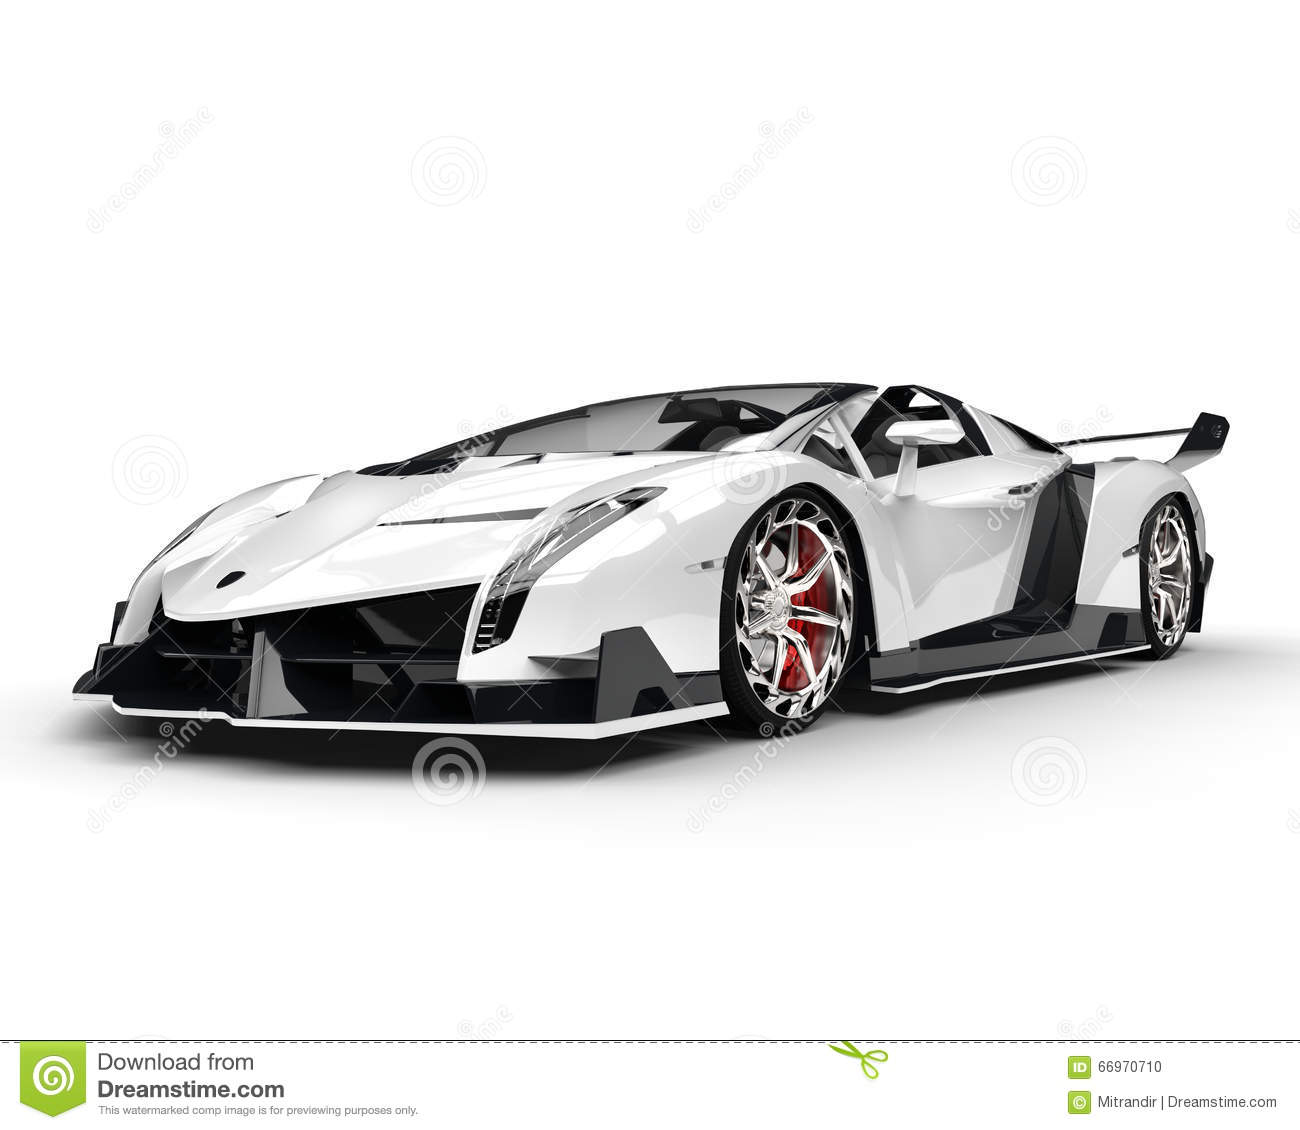 Voiture de course blanche tir de studio illustration stock illustration du v hicule - Voiture de course image ...